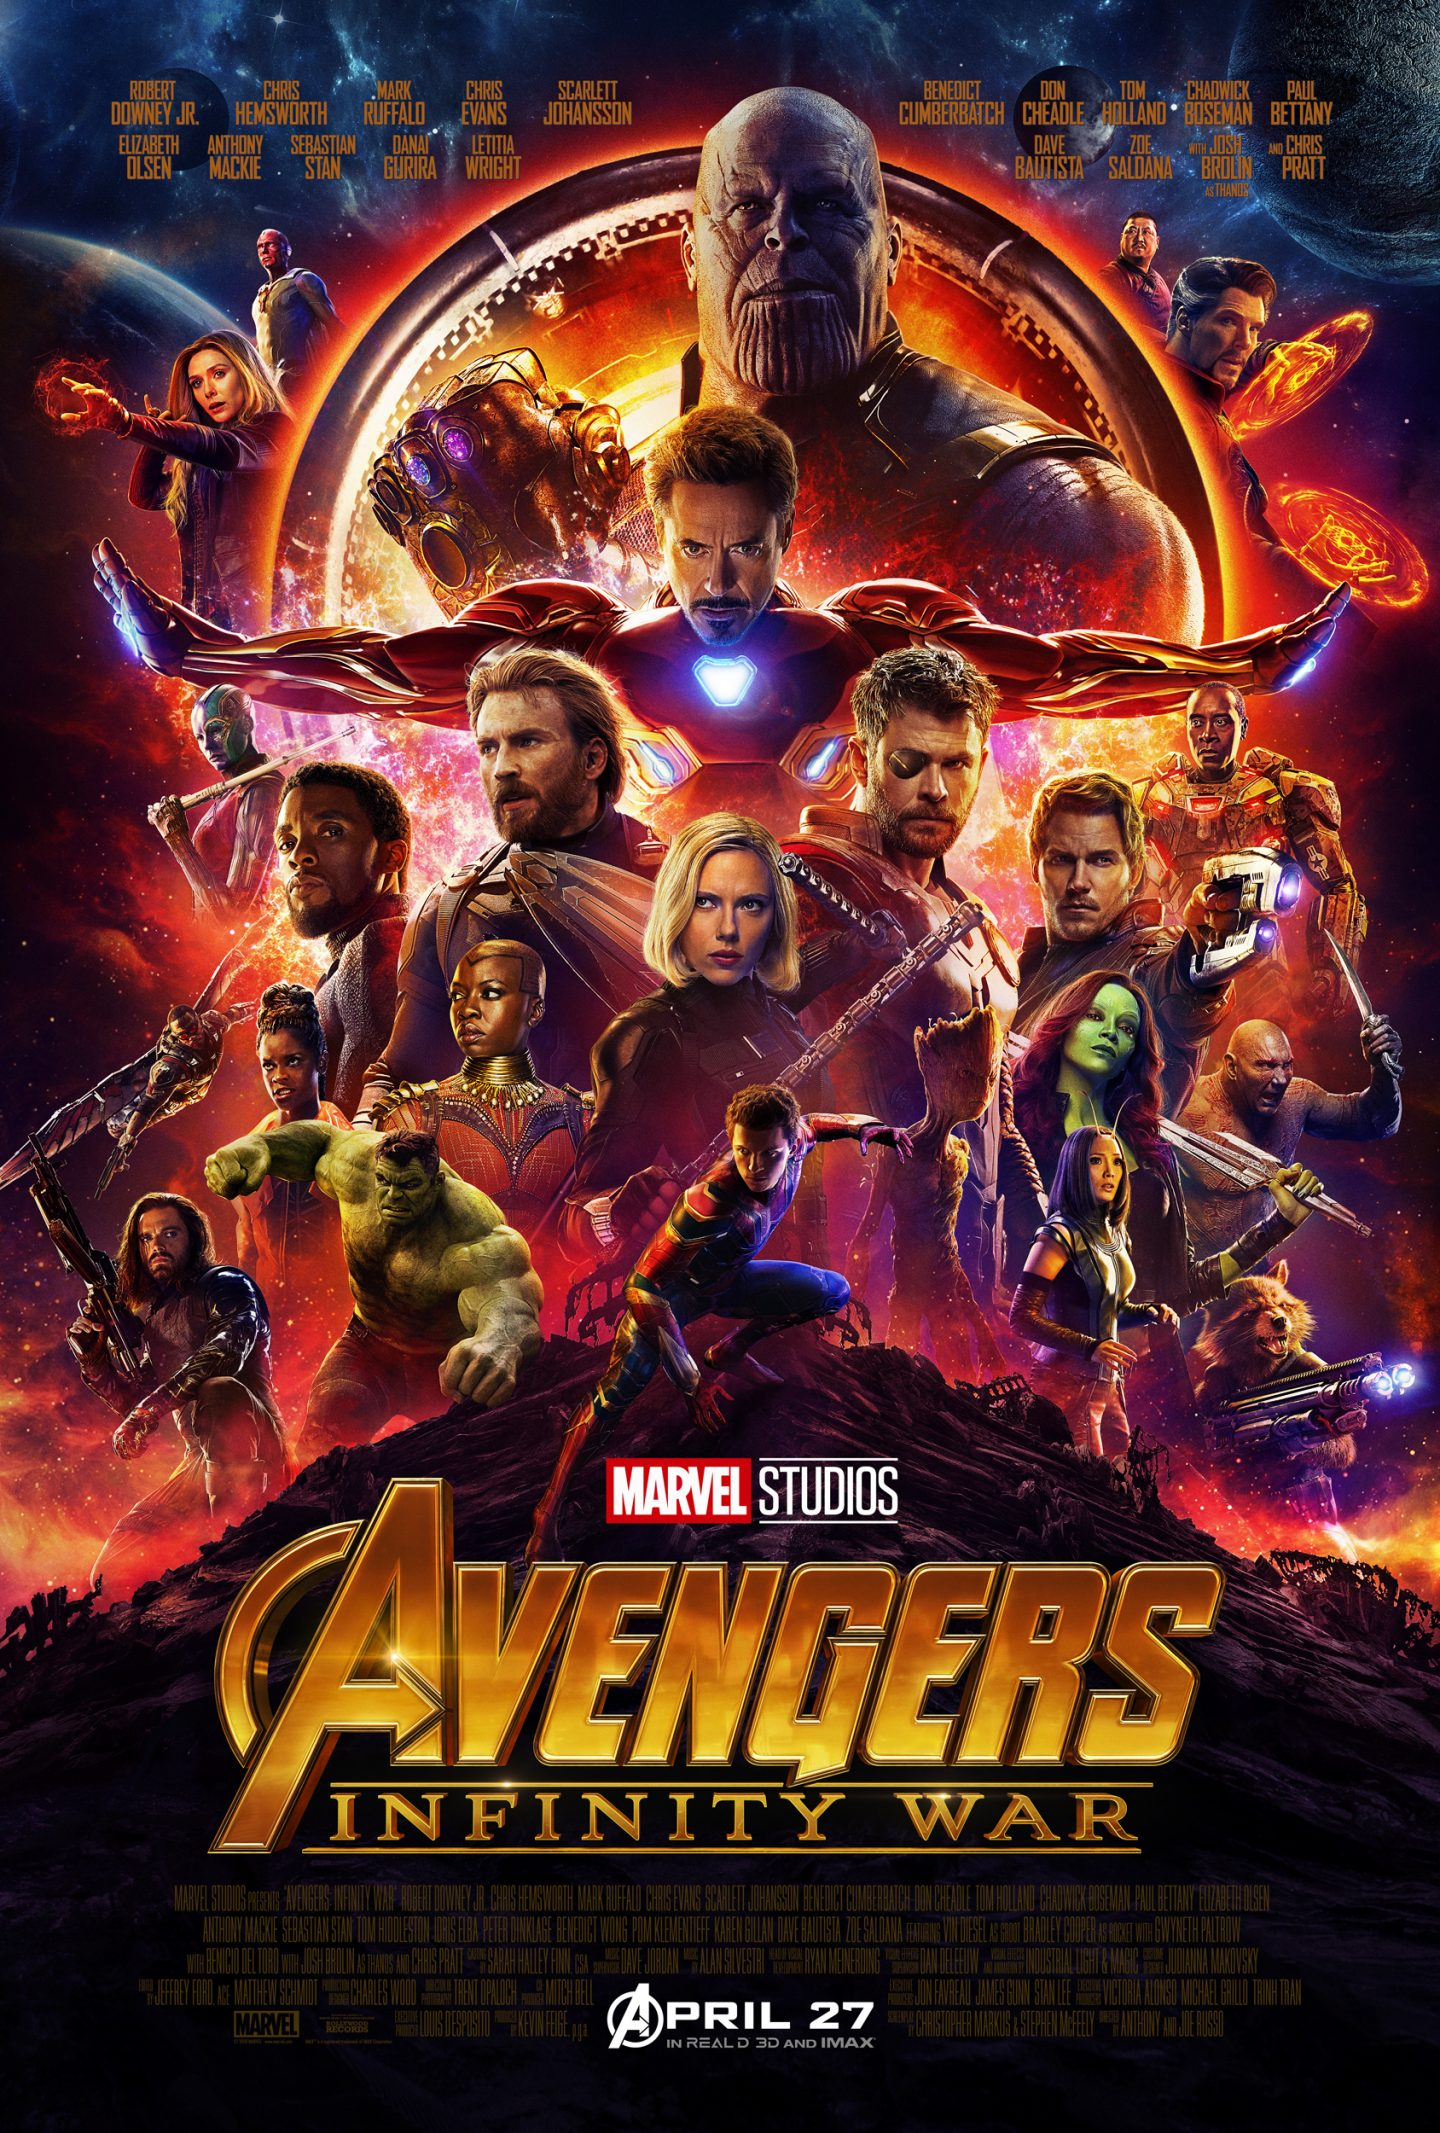 http://marvelcinematicuniverse.wikia.com/wiki/File:Avengers_Infinity_war_poster.jpeg